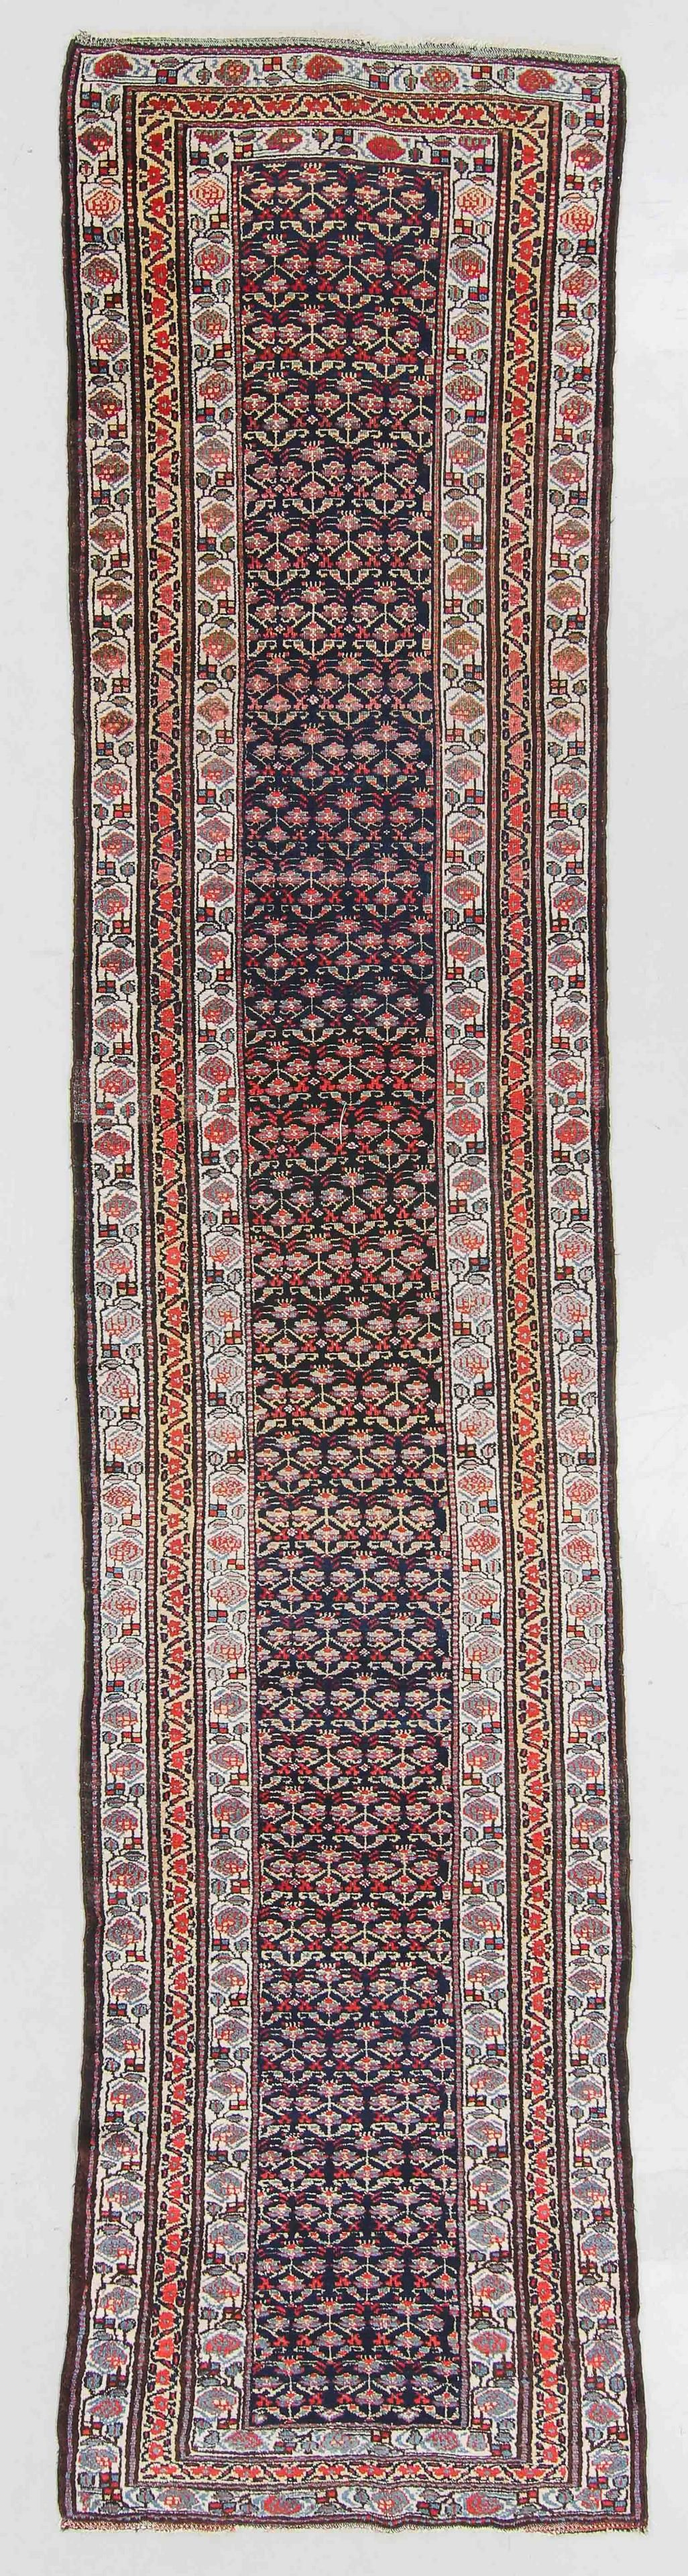 Antique Malayer Rug, Persia: 3'4'' x 15'3''